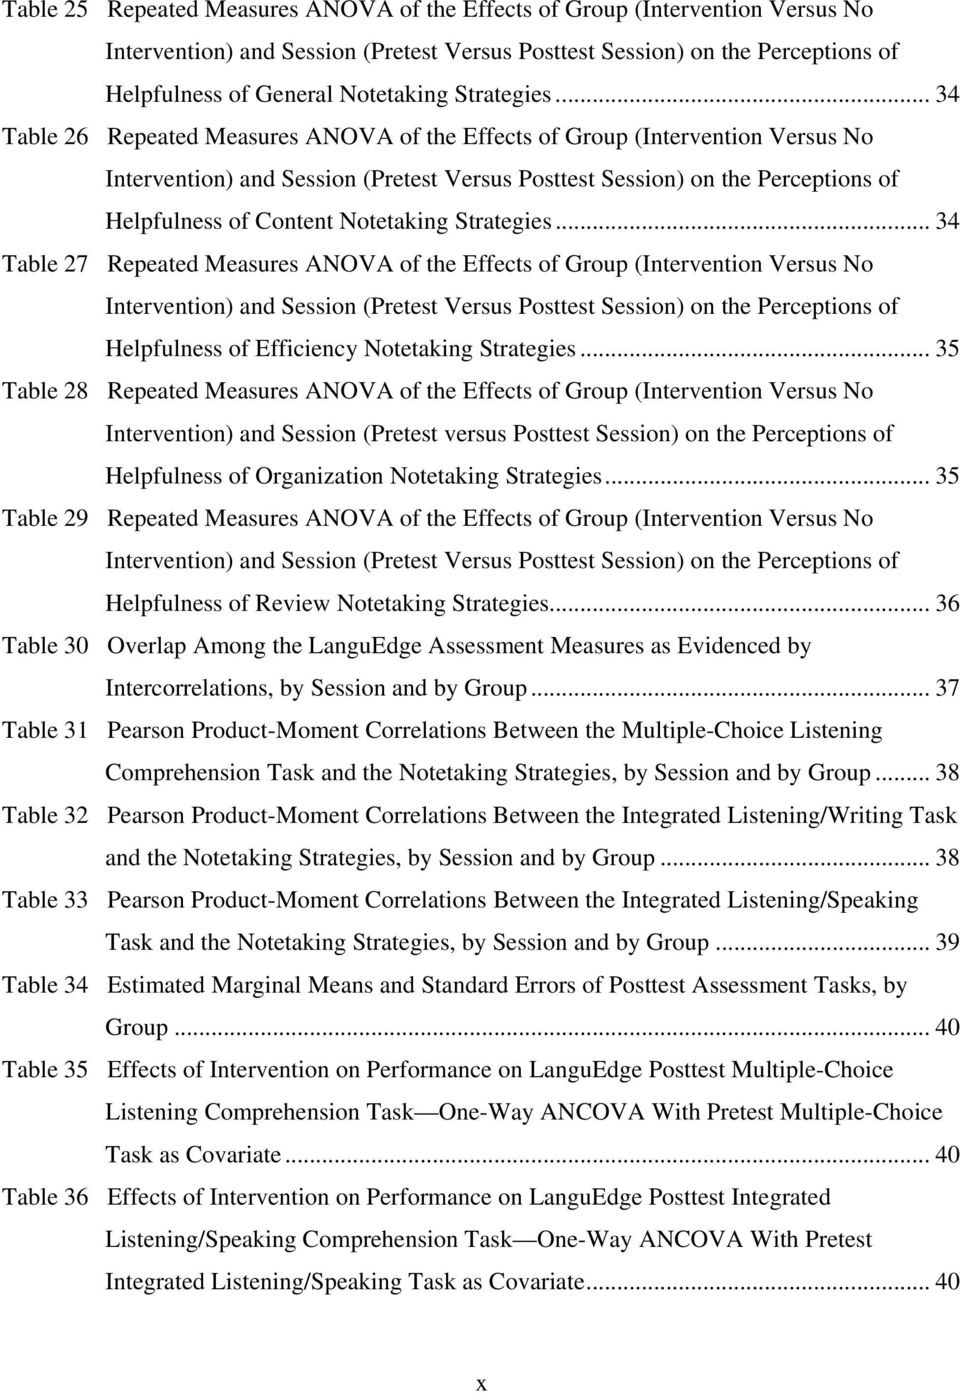 .. 34 Table 26 Repeated Measures ANOVA of the Effects of Group (Intervention Versus No Intervention) and Session (Pretest Versus Posttest Session) on the Perceptions of Helpfulness of Content